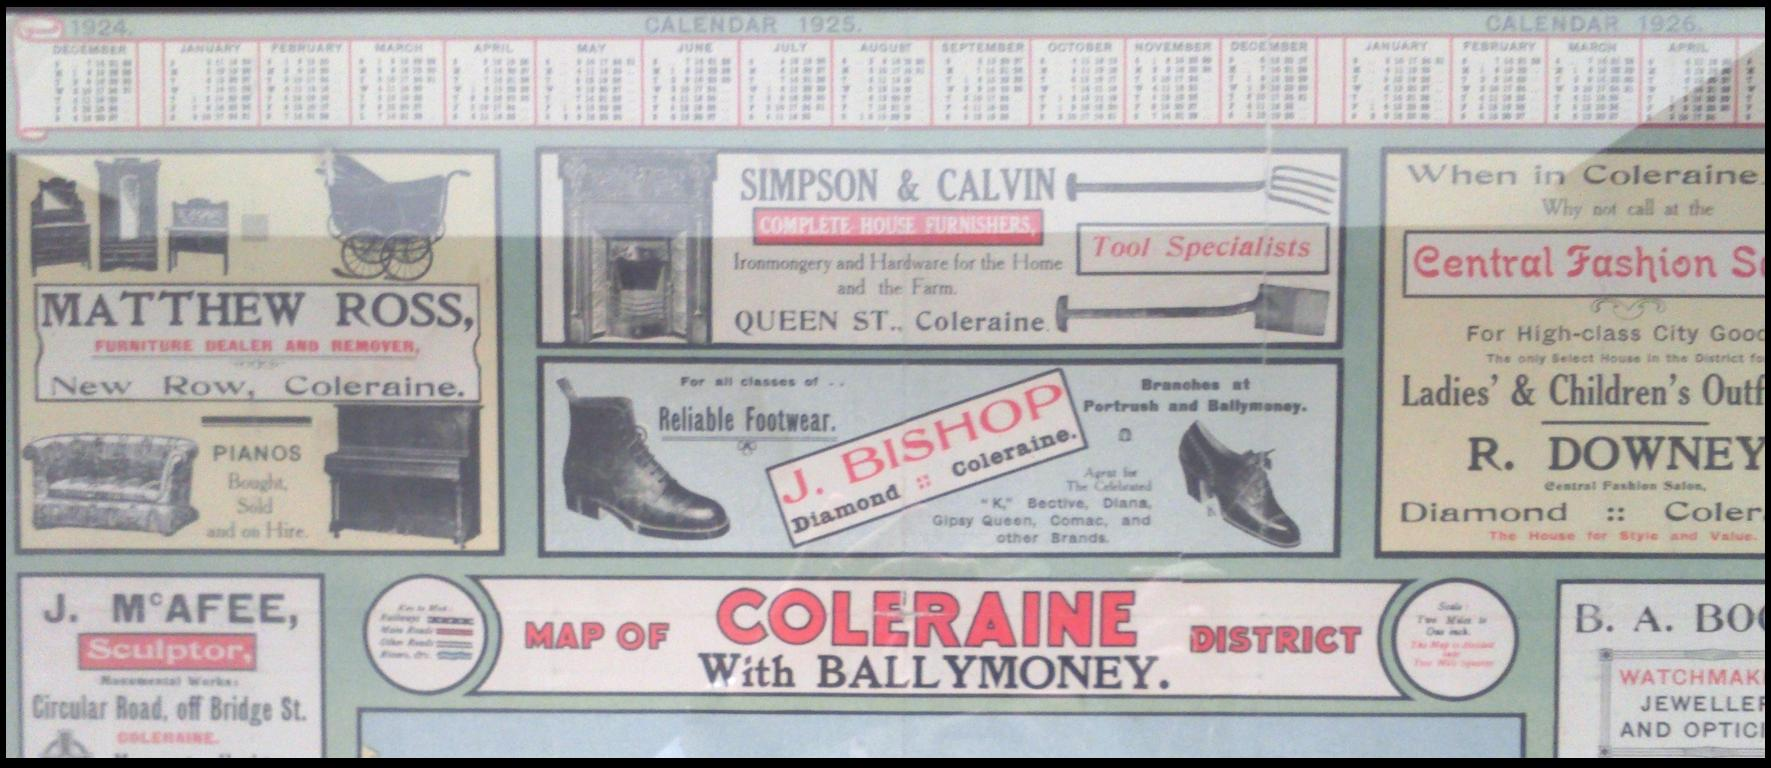 An advert for J. Bishop from 1924  mentioning branches in Coleraine, Portrush and Ballymoney